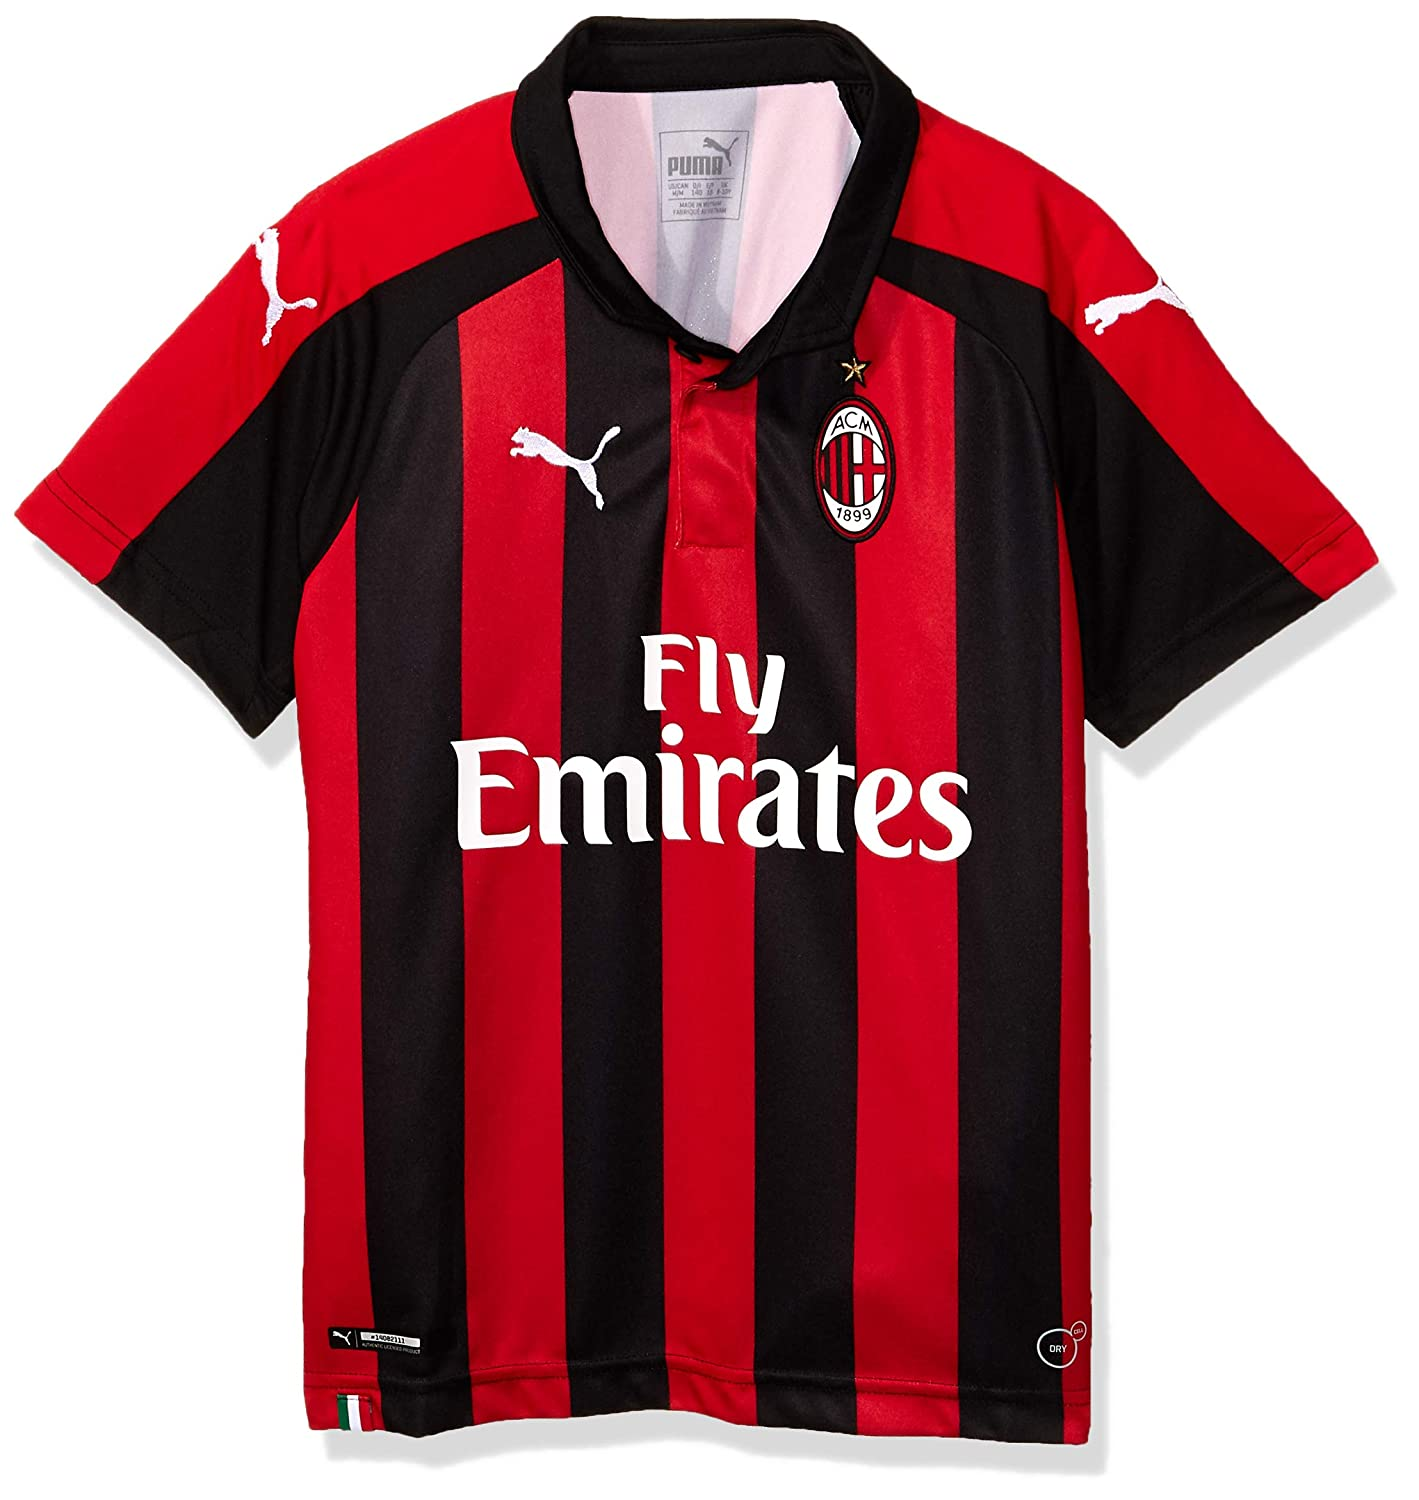 Puma Jungen Ac Milan Home Shirt Replica Ss Kids with Sponsor Logo Trikot